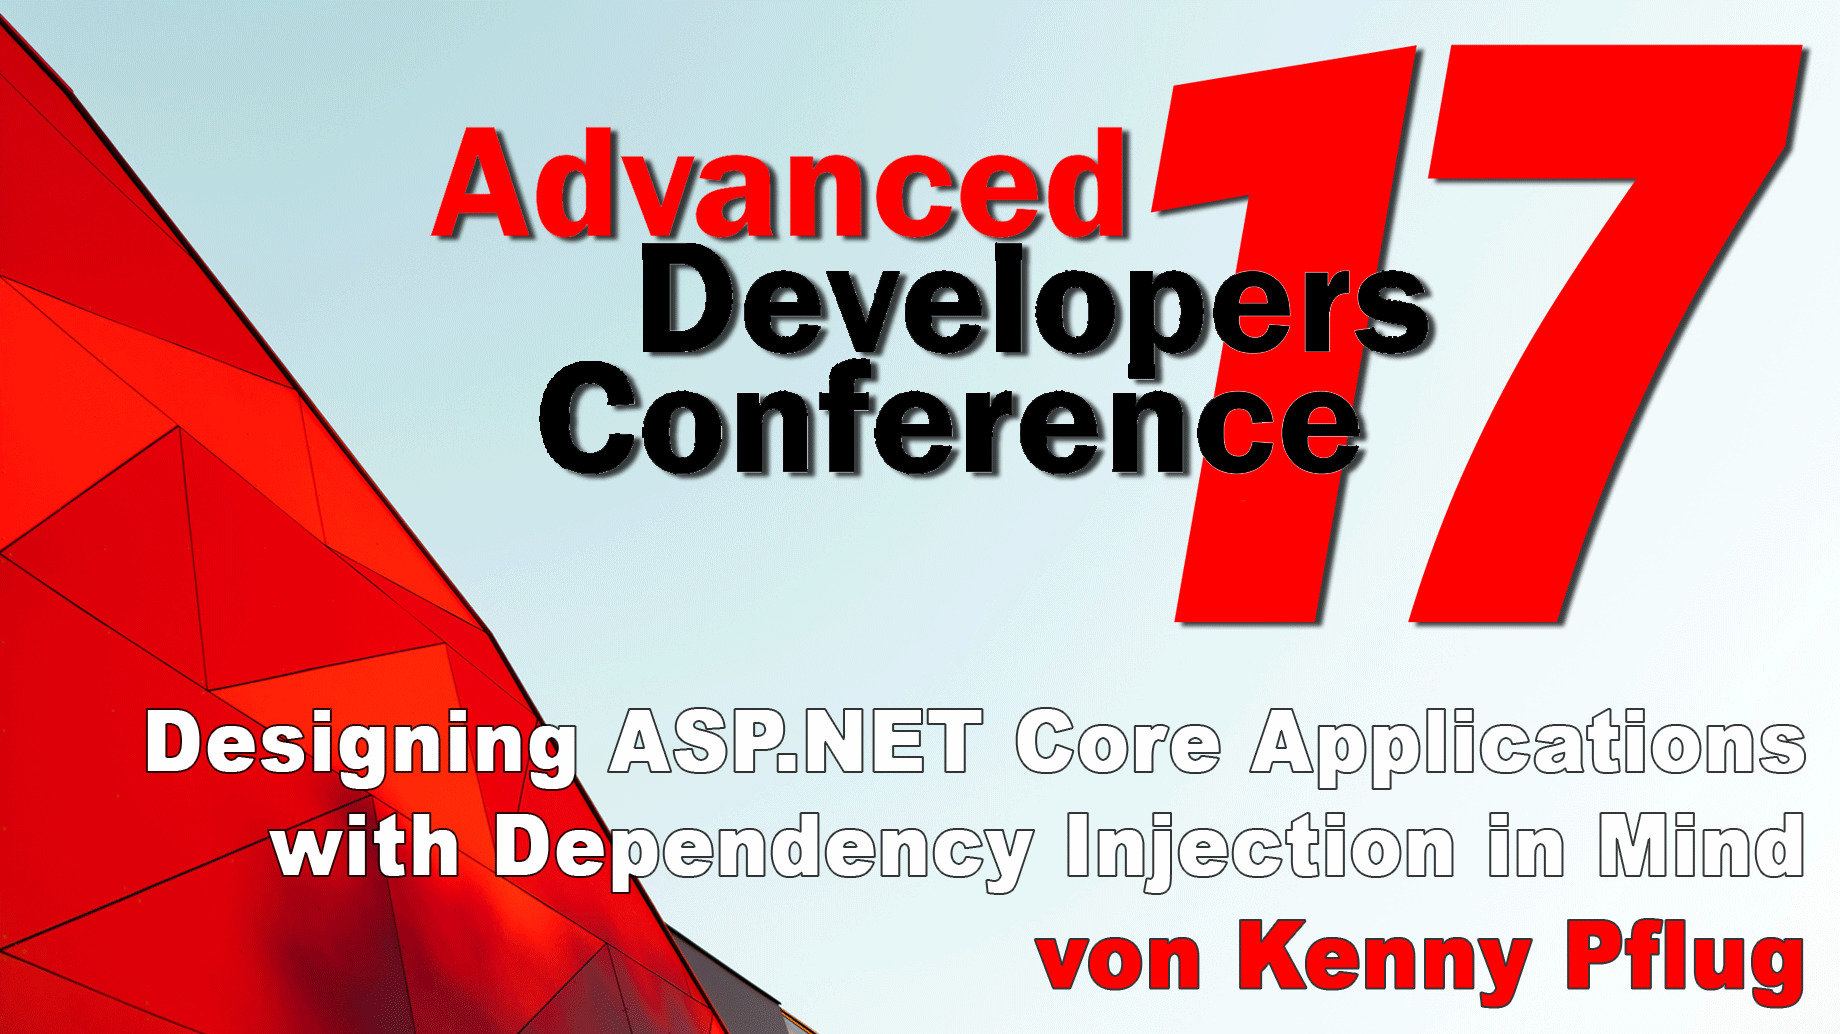 2017/ADC_net_core/Vortrag1-Designing-ASPNet-Core-Applications-KennyPflug